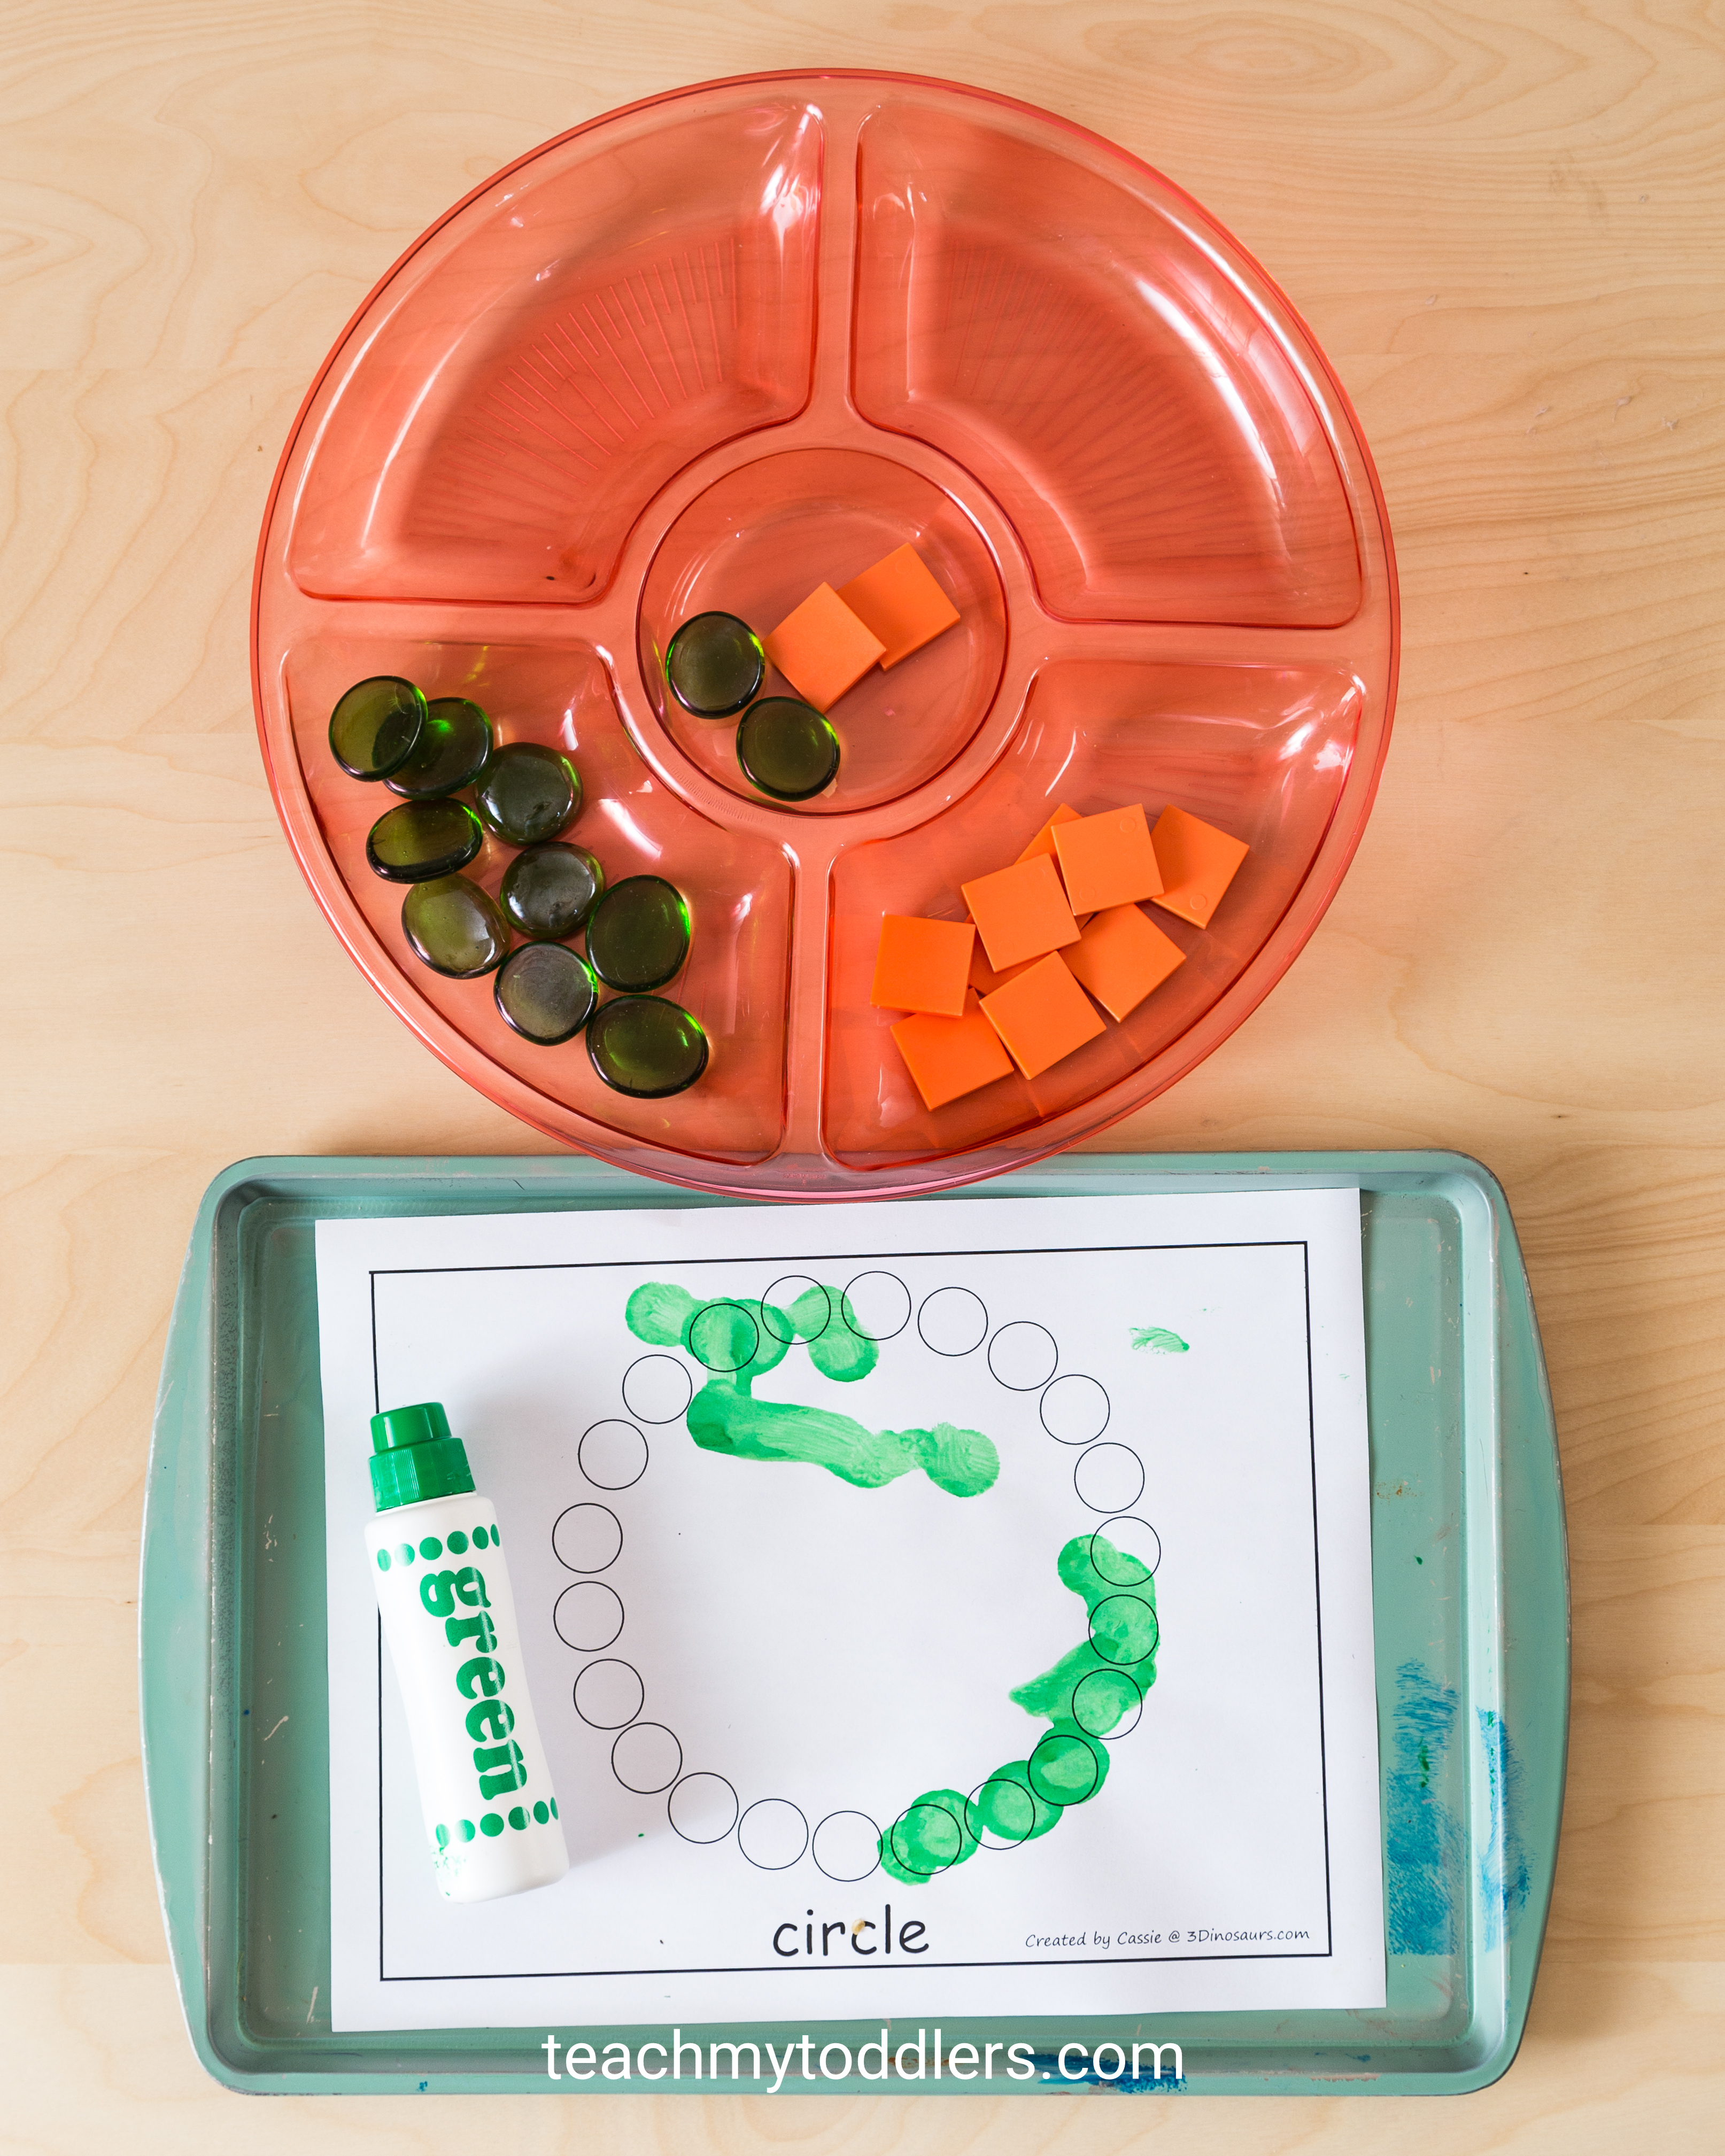 Learn how to use these circle trays to teach toddlers shapes